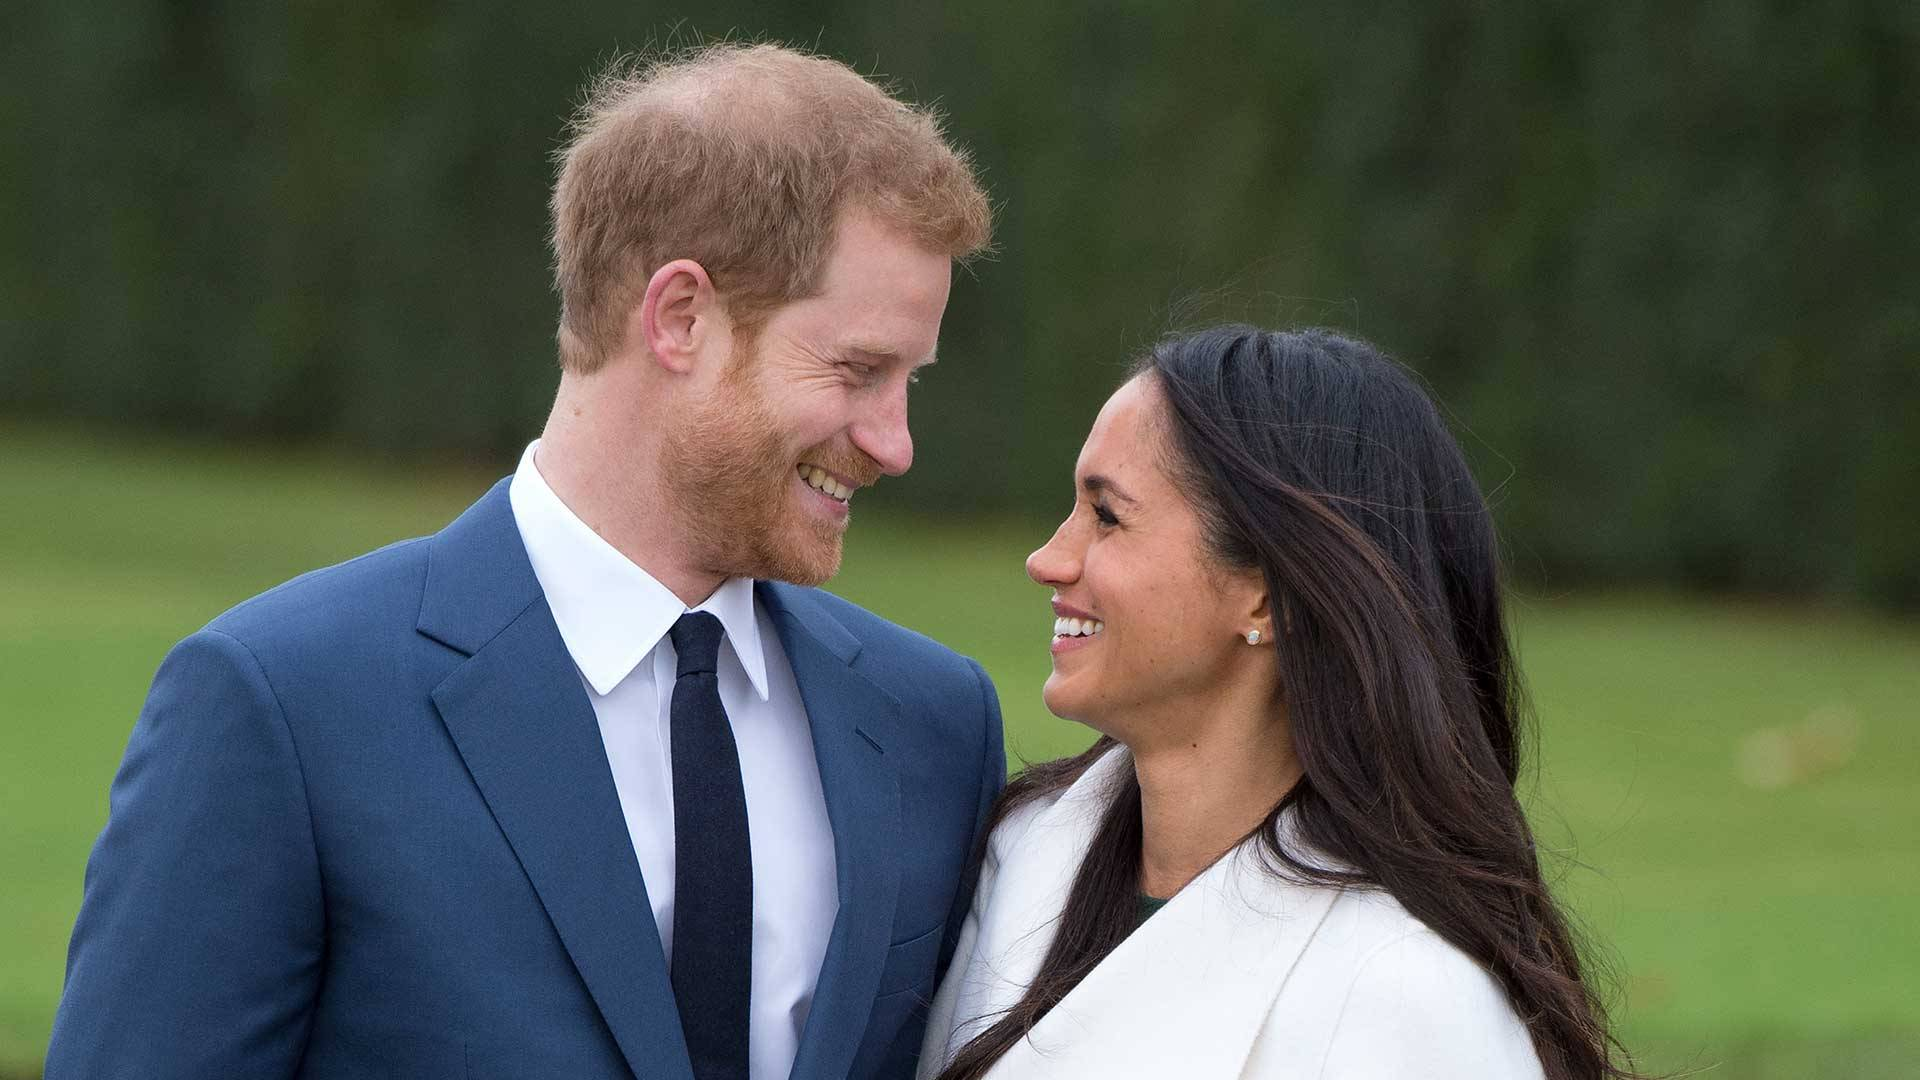 Coverage Of Royal Wedding.Join Nine Pbs For Royal Wedding Coverage Nine Network Of